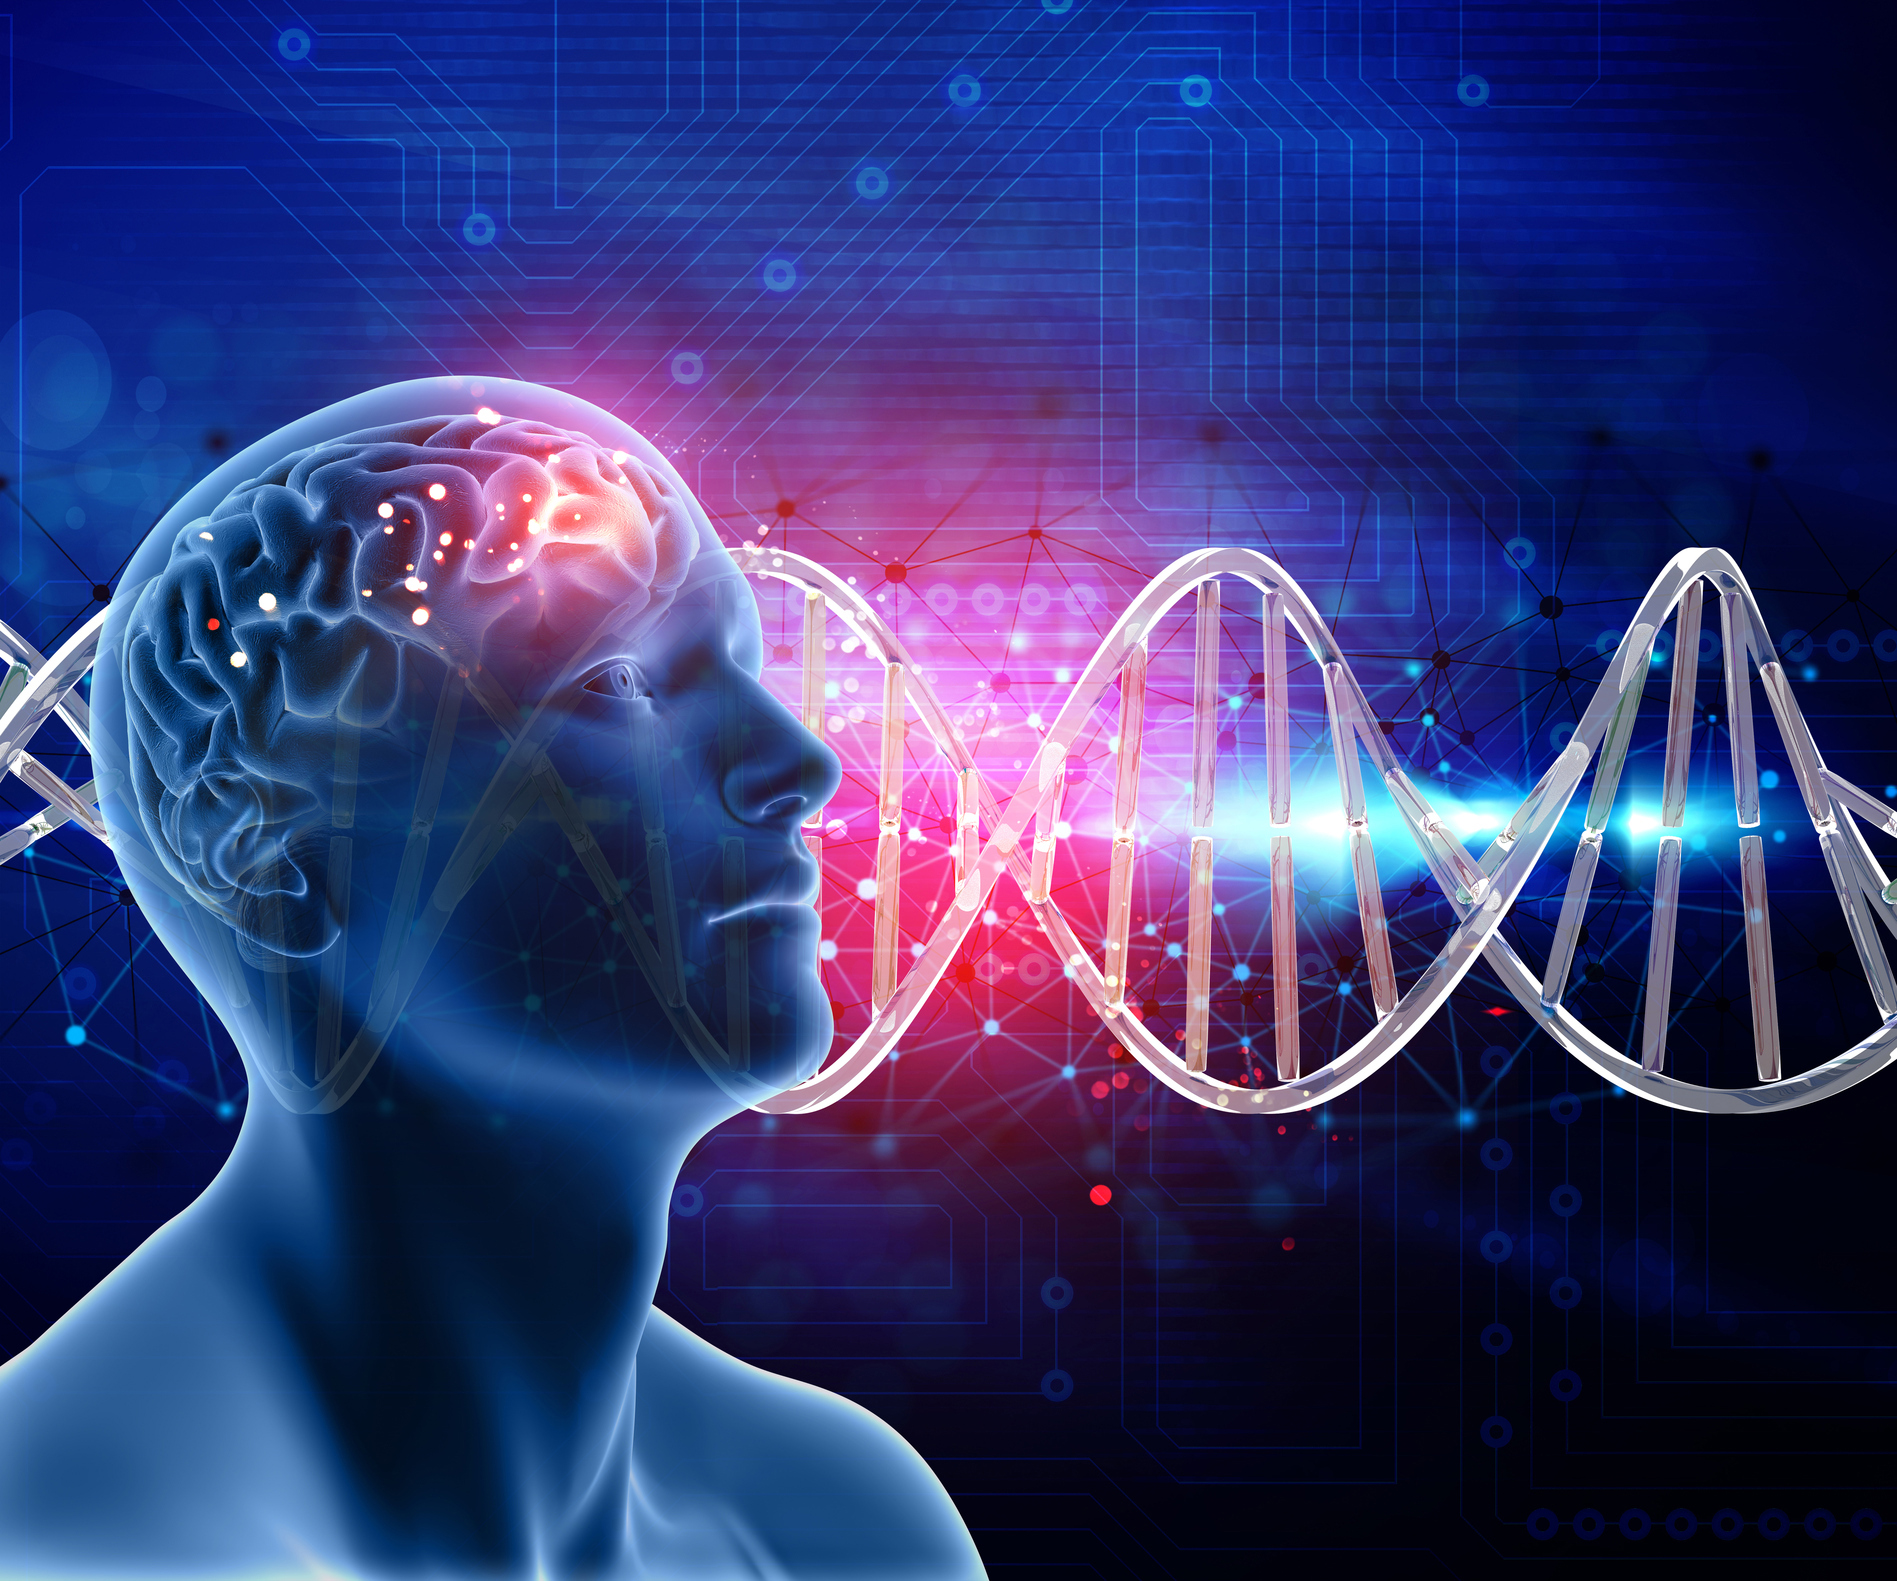 Gene Expression Patterns May Underlie >> Mental Disorders May Share Molecular Origins National Institutes